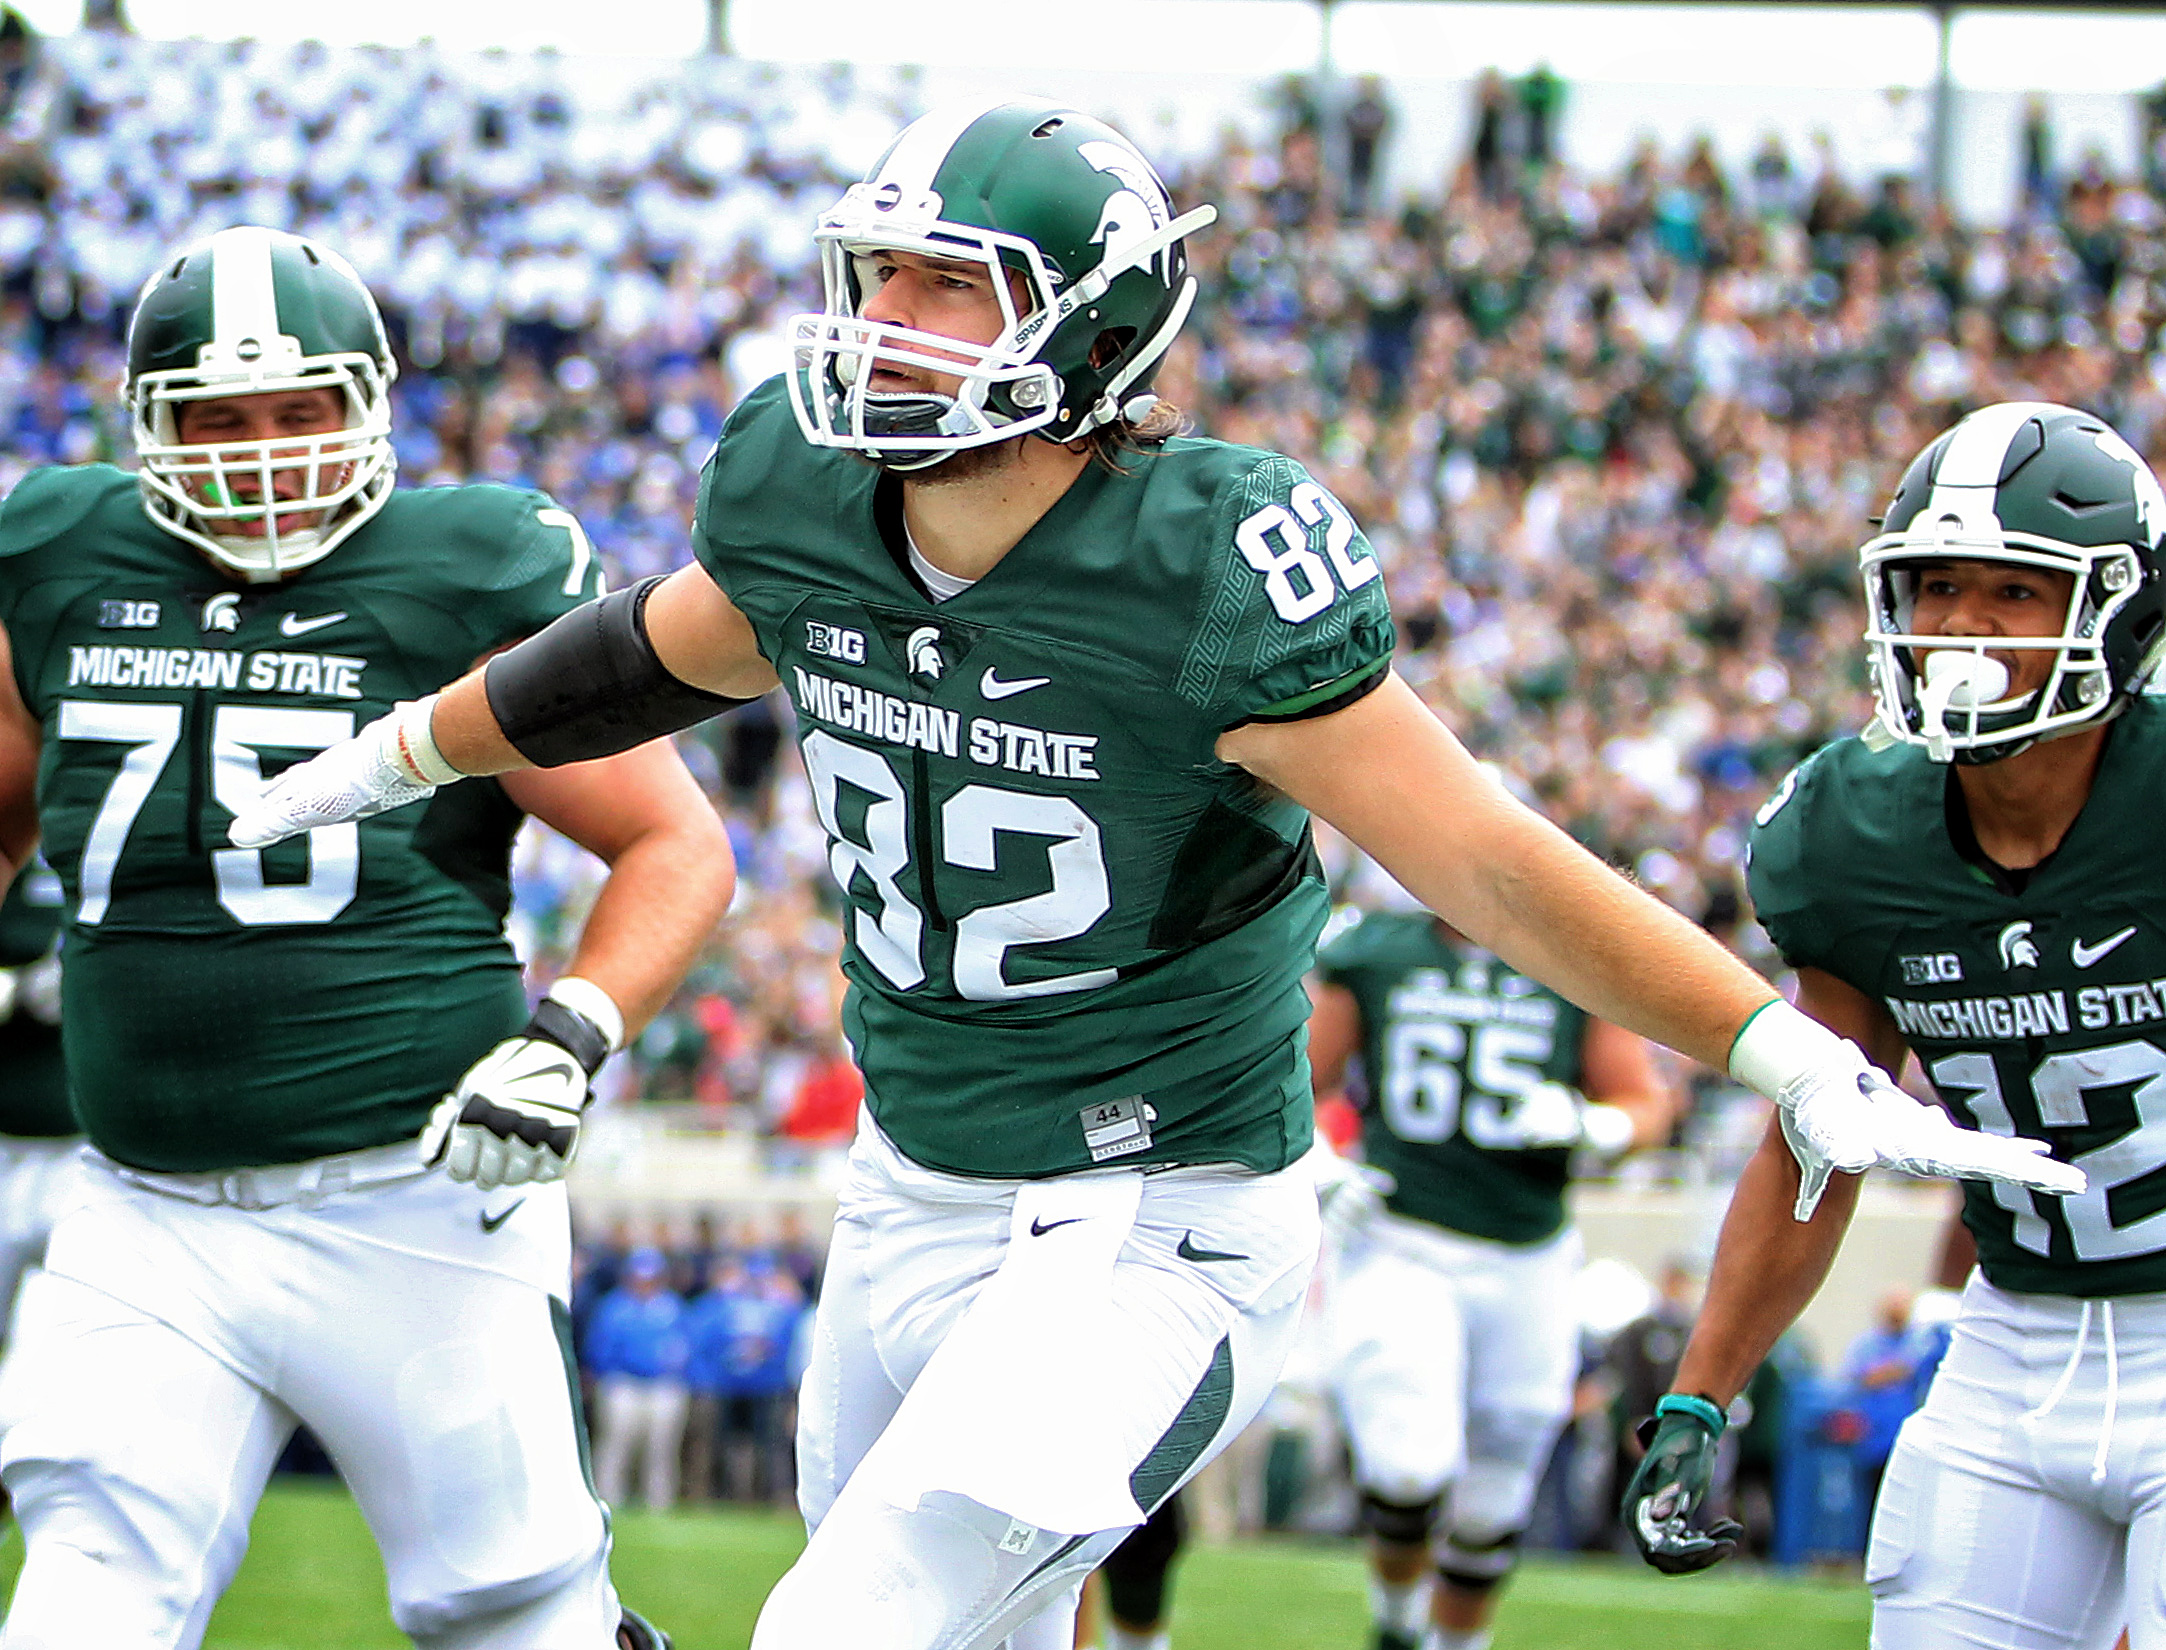 michigan state football nfl game spartans kc draft force air against spring today spartan mi picks offensive chiefs mock indiana